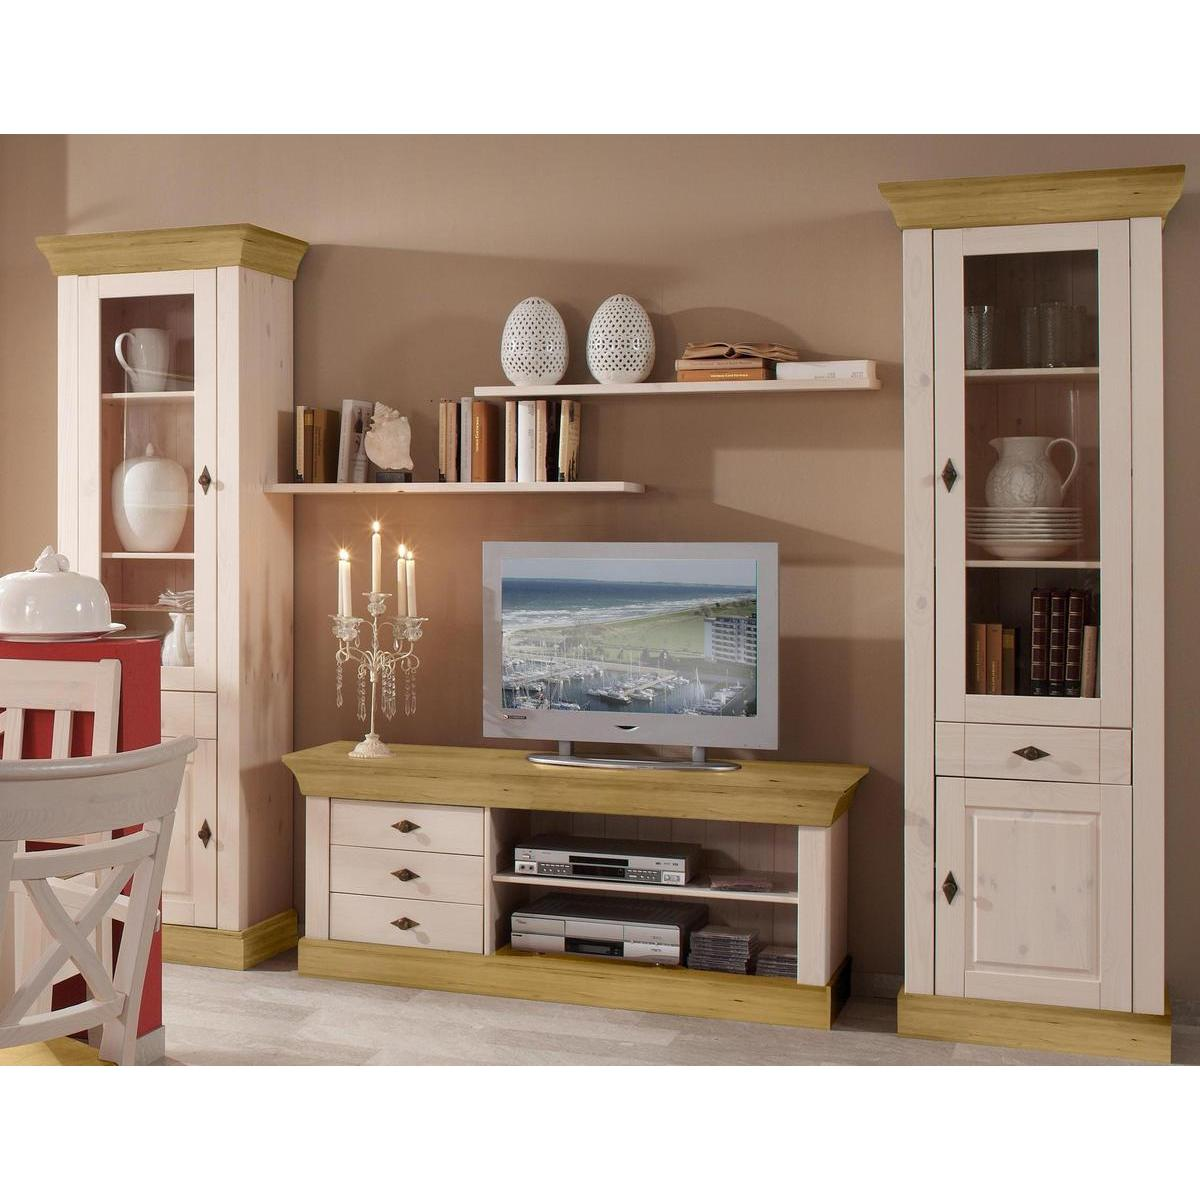 tv schrank kiefer good excellent tv schrank kiefer gelaugt gelt glastr dvd stauraum in mit tv. Black Bedroom Furniture Sets. Home Design Ideas